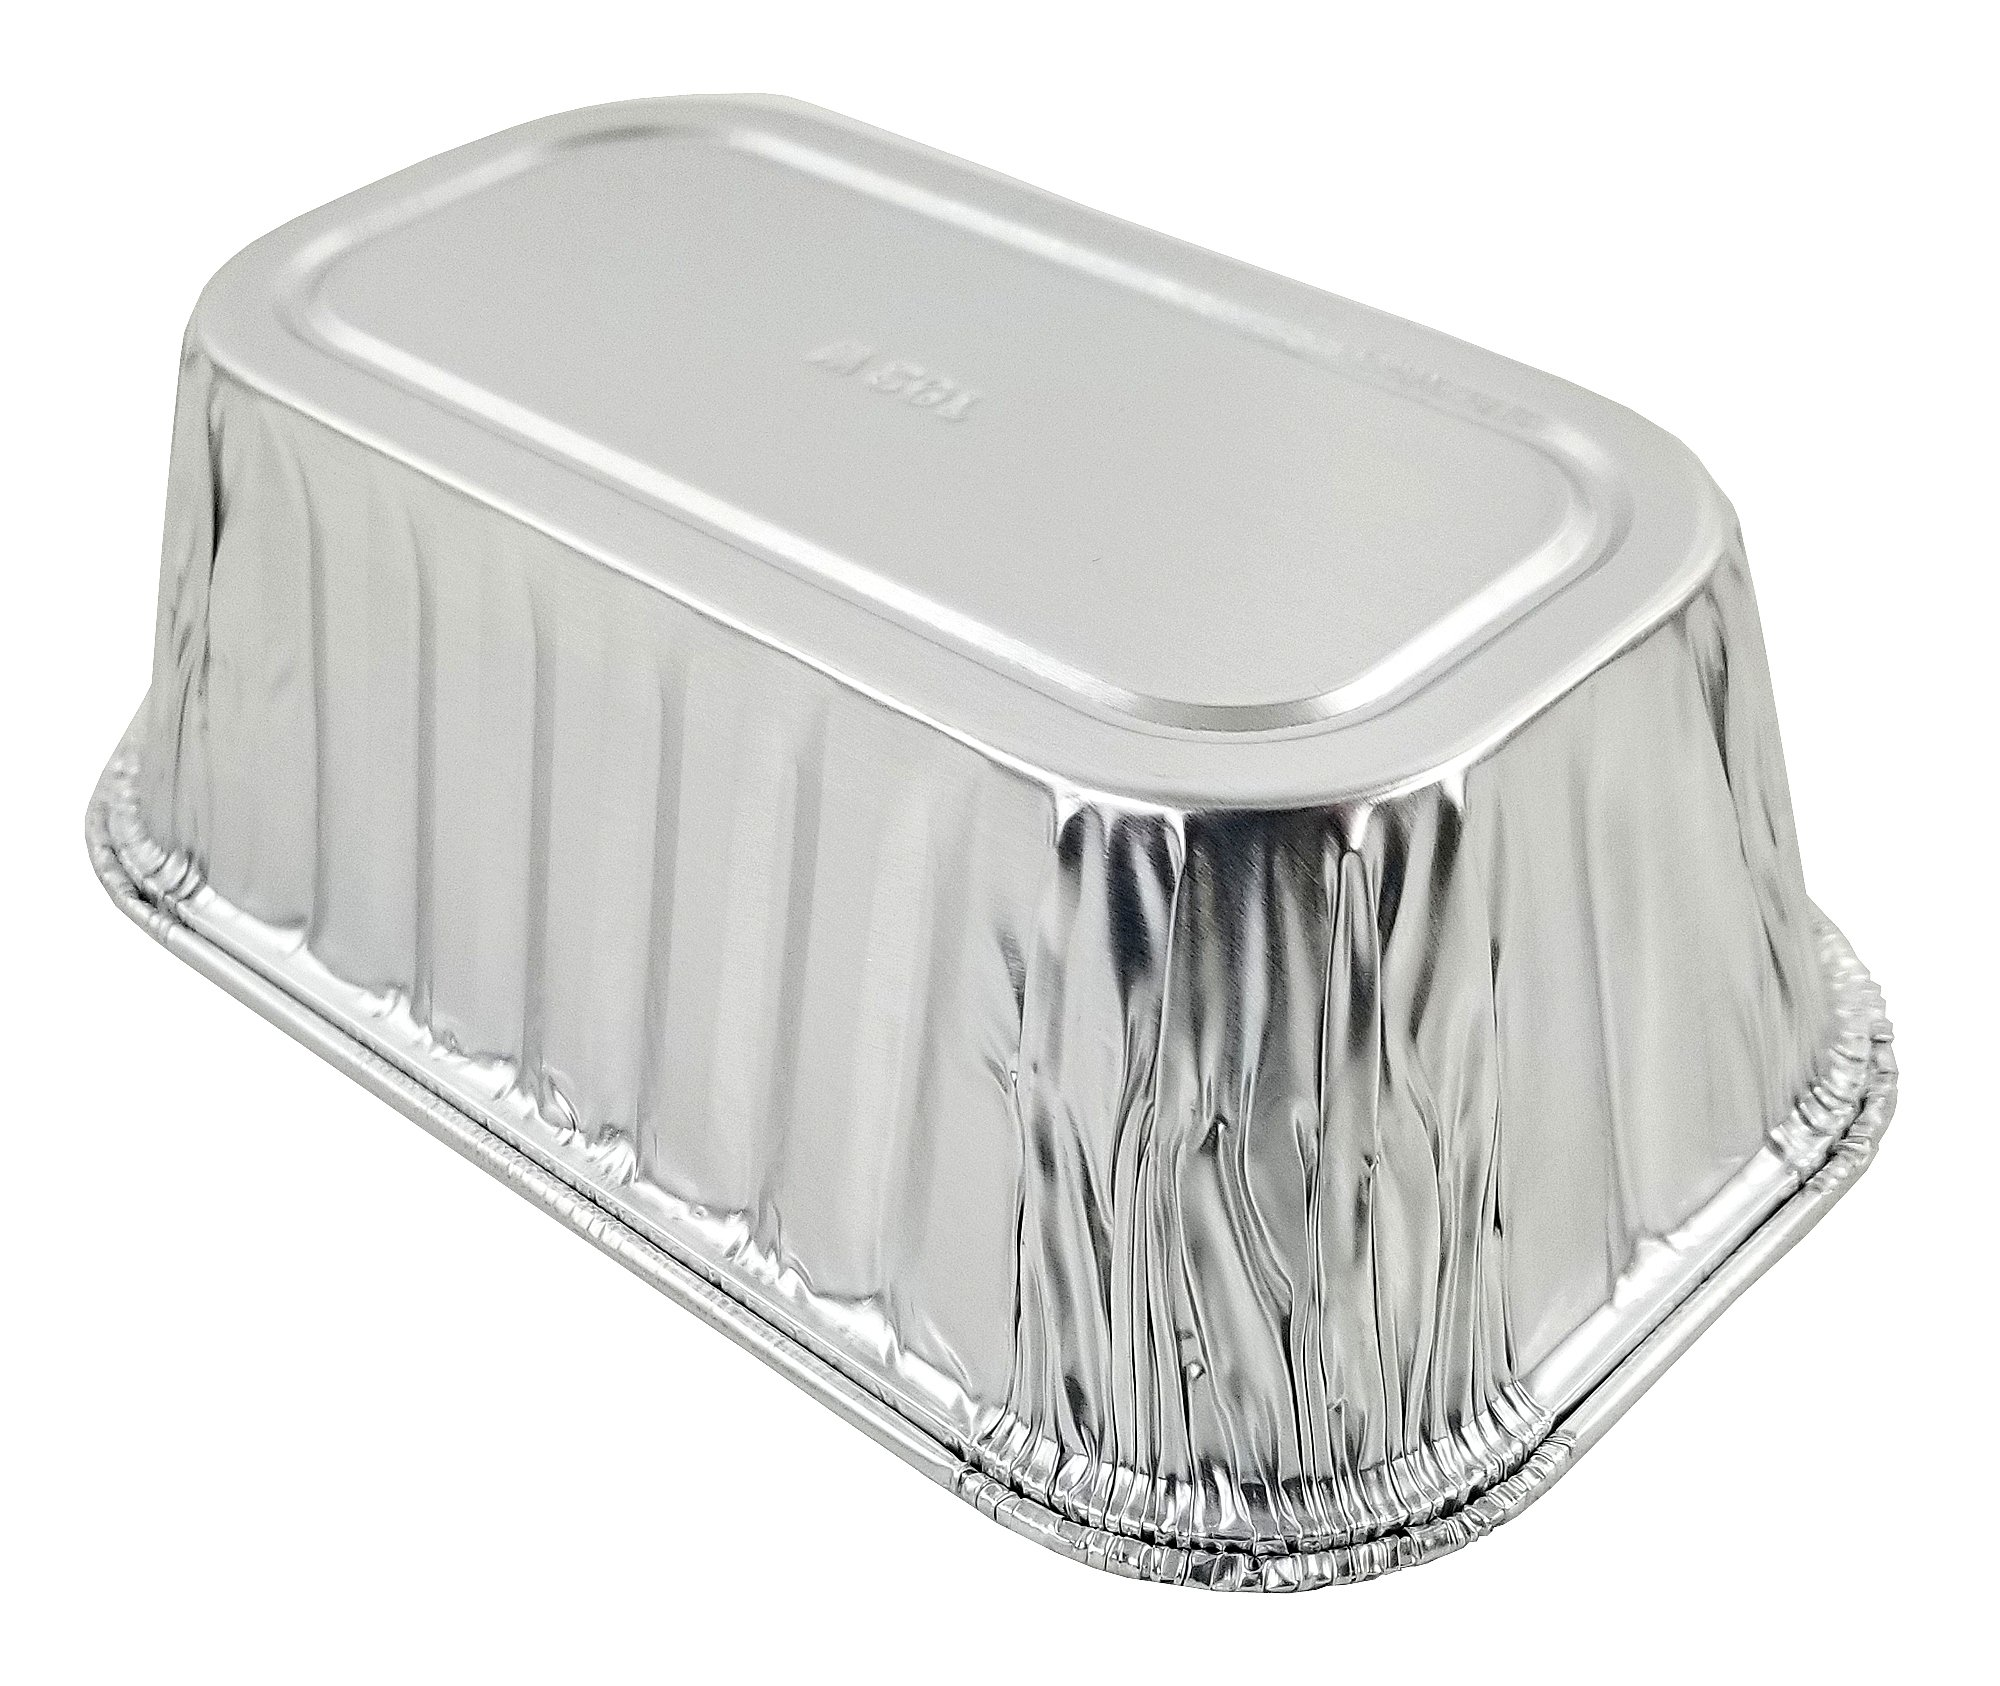 Pactogo Disposable 1 lb. Aluminum Foil Mini Loaf Pans with Clear Dome Lids (Pack of 100 Sets) by PACTOGO (Image #8)